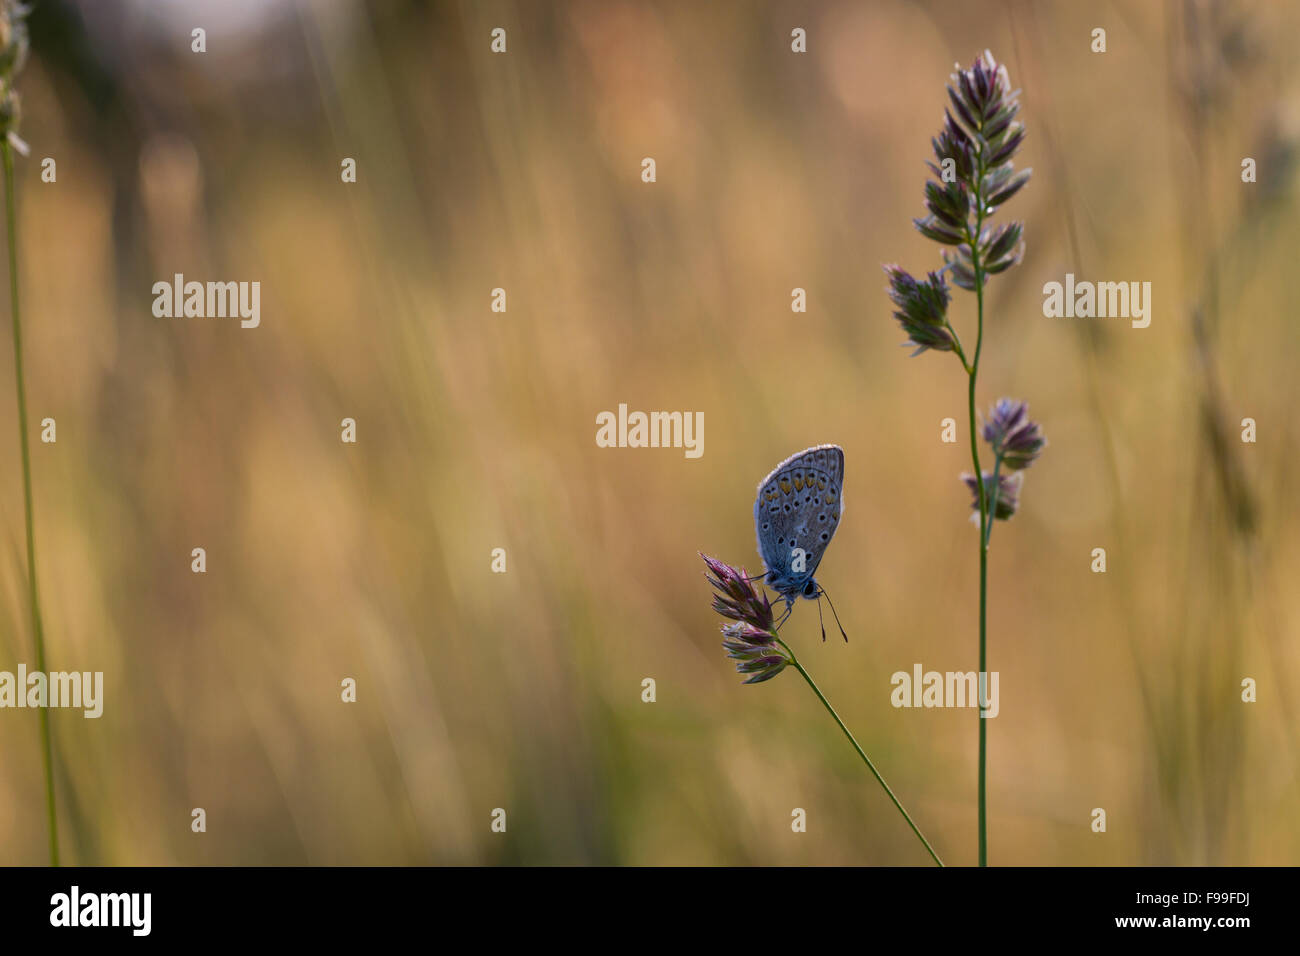 Common Blue butterfly (Polyommatus icarus) adult resting on a grass flowerhead. Causse de Gramat, France. - Stock Image